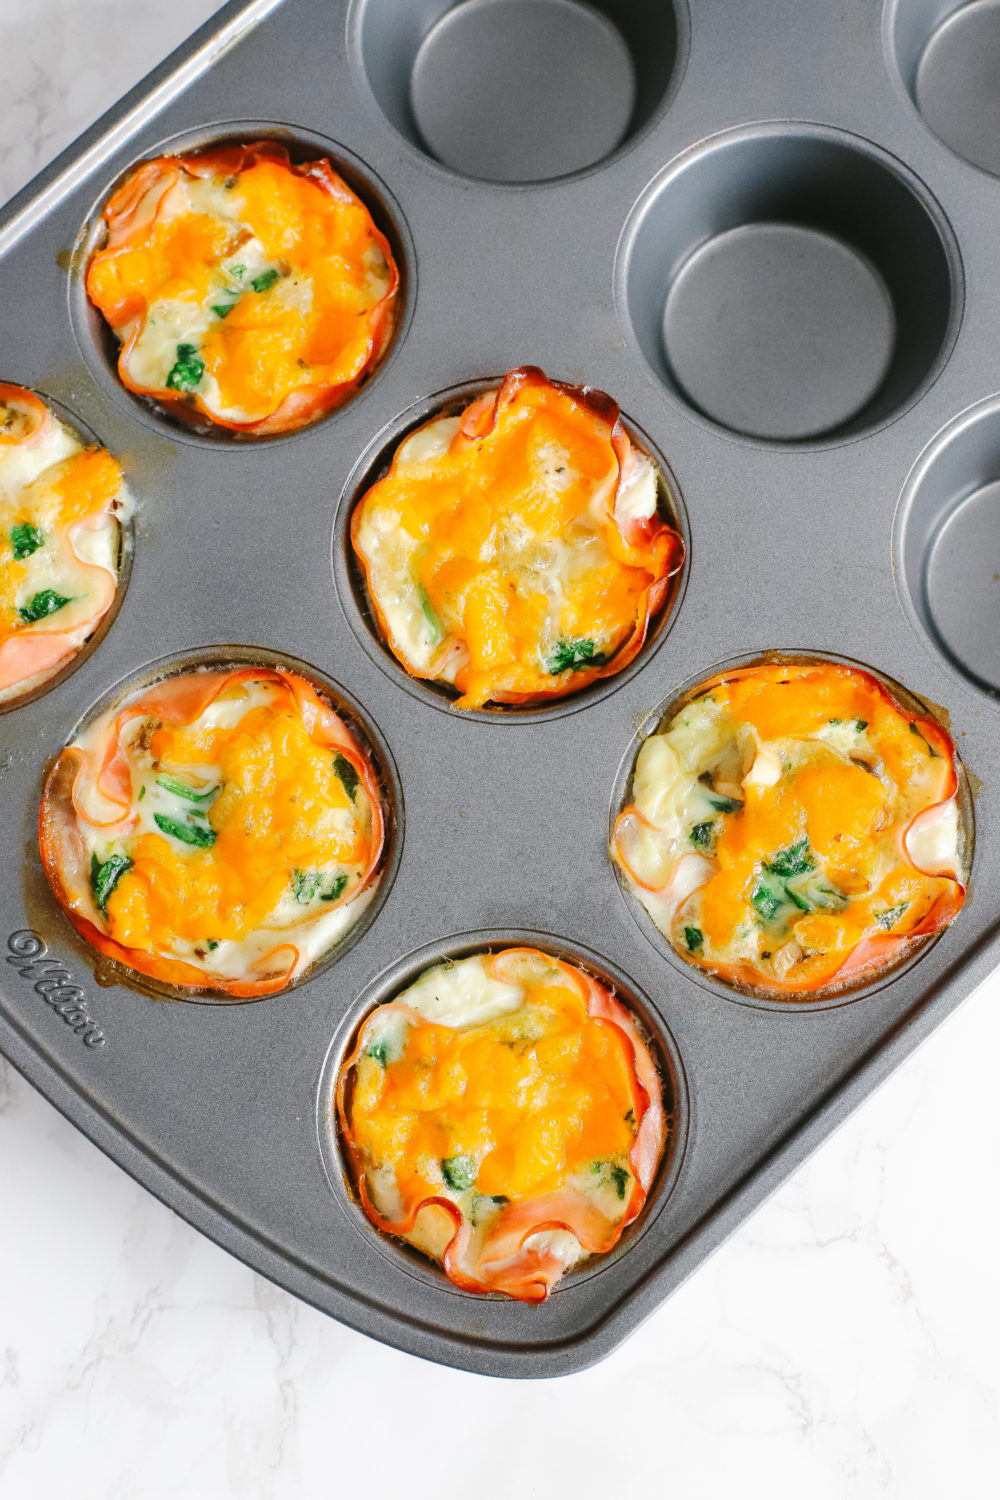 Keto and low carb egg cups are easy to prepare and great for a quick, on-the-go breakfast. Store in the fridge or freezer, reheat, and enjoy. Keto Breakfast Recipes   Low Carb Recipe   Egg Whites   Ham and Egg Cups   Easy Recipes   Fat Burn   Weight Loss   Low Calorie   Gluten-Free   Sugar Free   Whole 30   Paleo   Kid-Friendly   Quick and Easy  